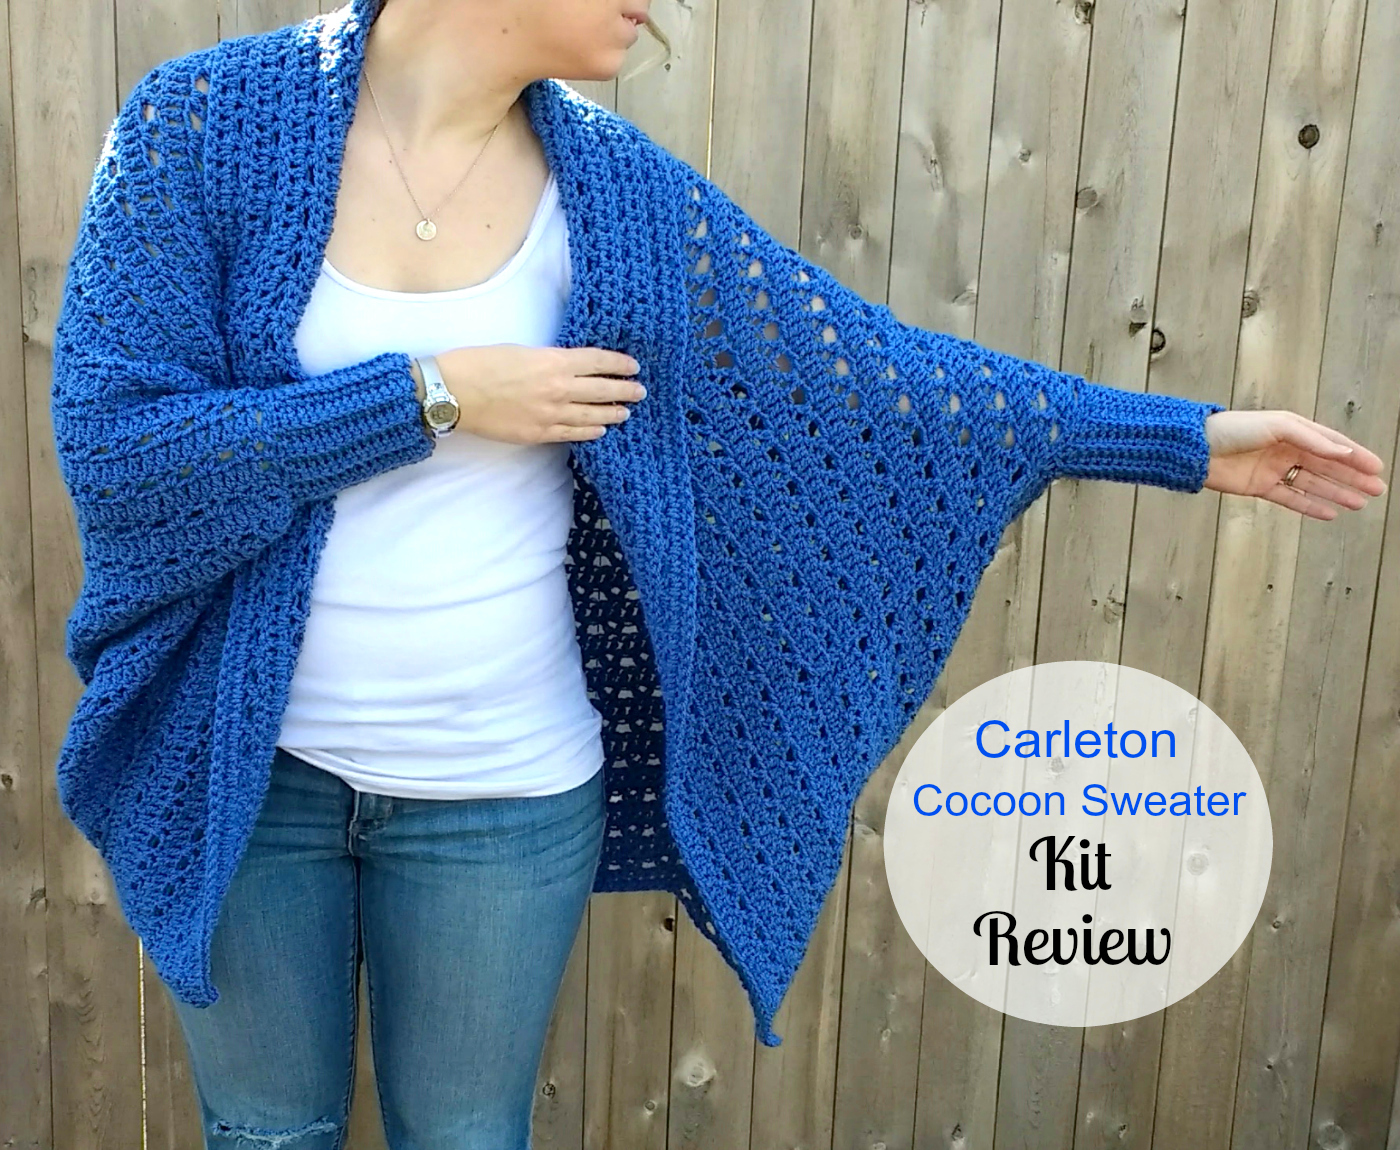 Free Crochet Cocoon Sweater Pattern : Carleton Cocoon Sweater Kit from Craftsy - A Review by ...